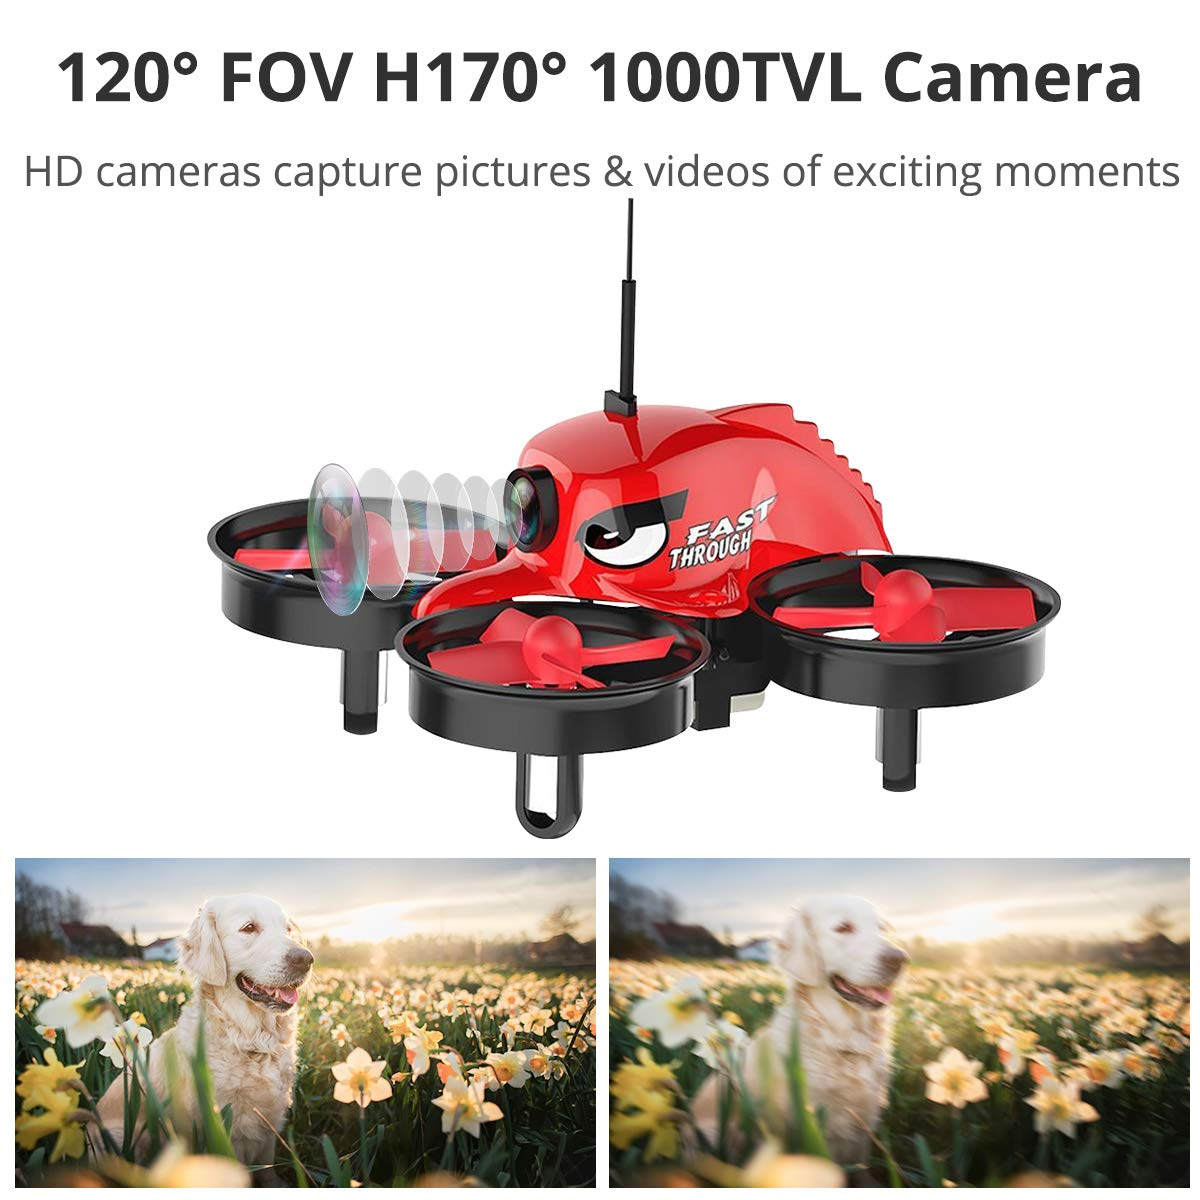 REDPAWZ R011 Micro FPV Racing Drone with 1000TVL Camera,VR Goggles, FOV  120°Wide-Angle Live Video Quadcopter, One Key Return, Headless Mode RTF  Drone